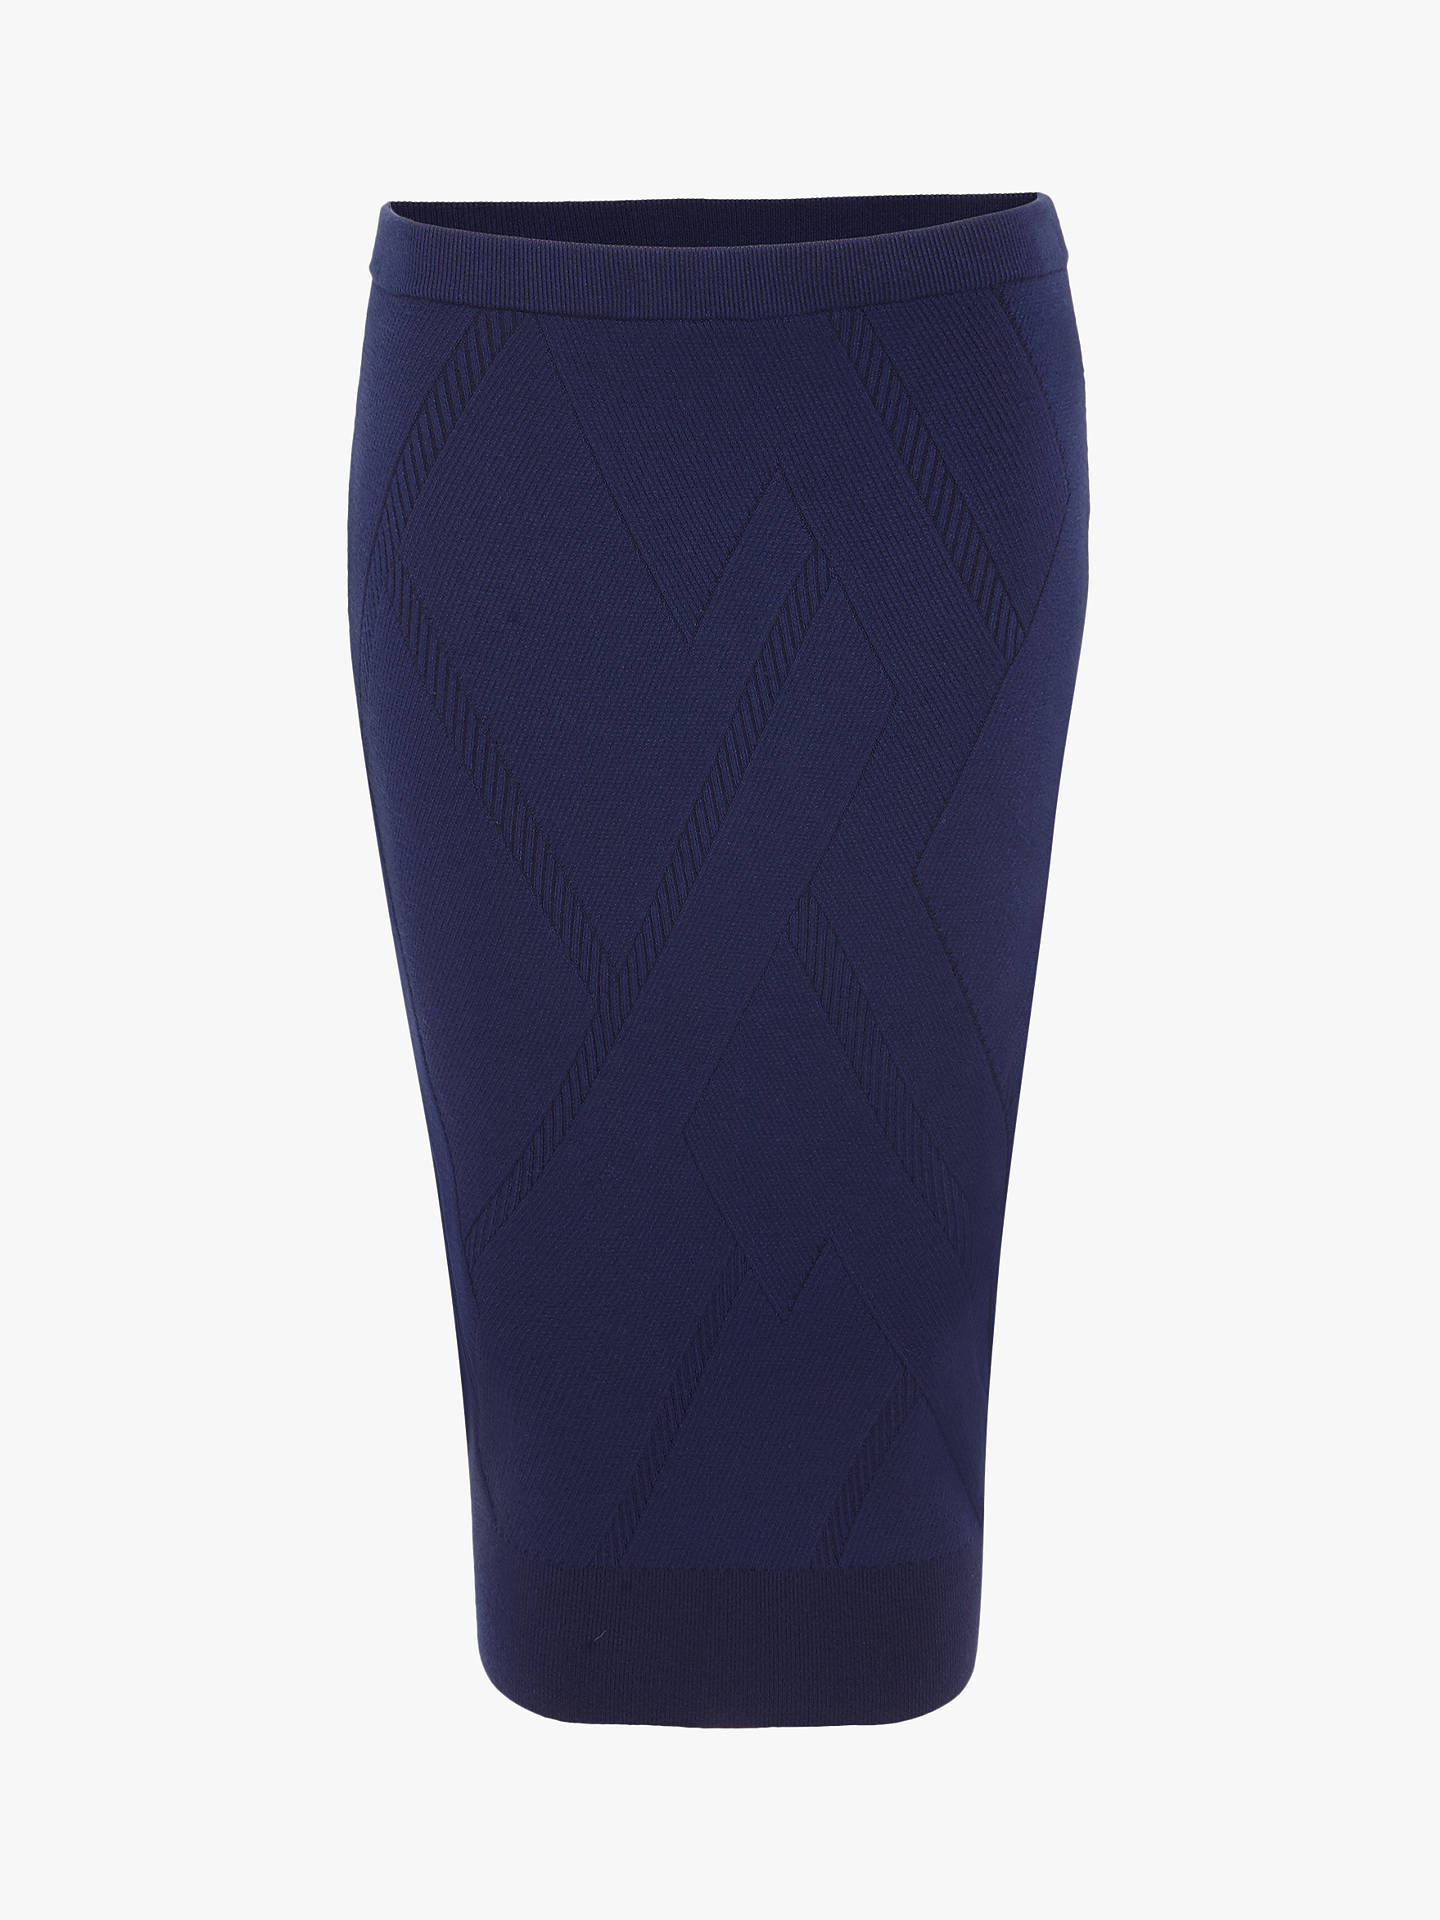 a53d85d07826 ... Buy Phase Eight Georgina Grid Skirt, Ink, 16 Online at johnlewis.com ...